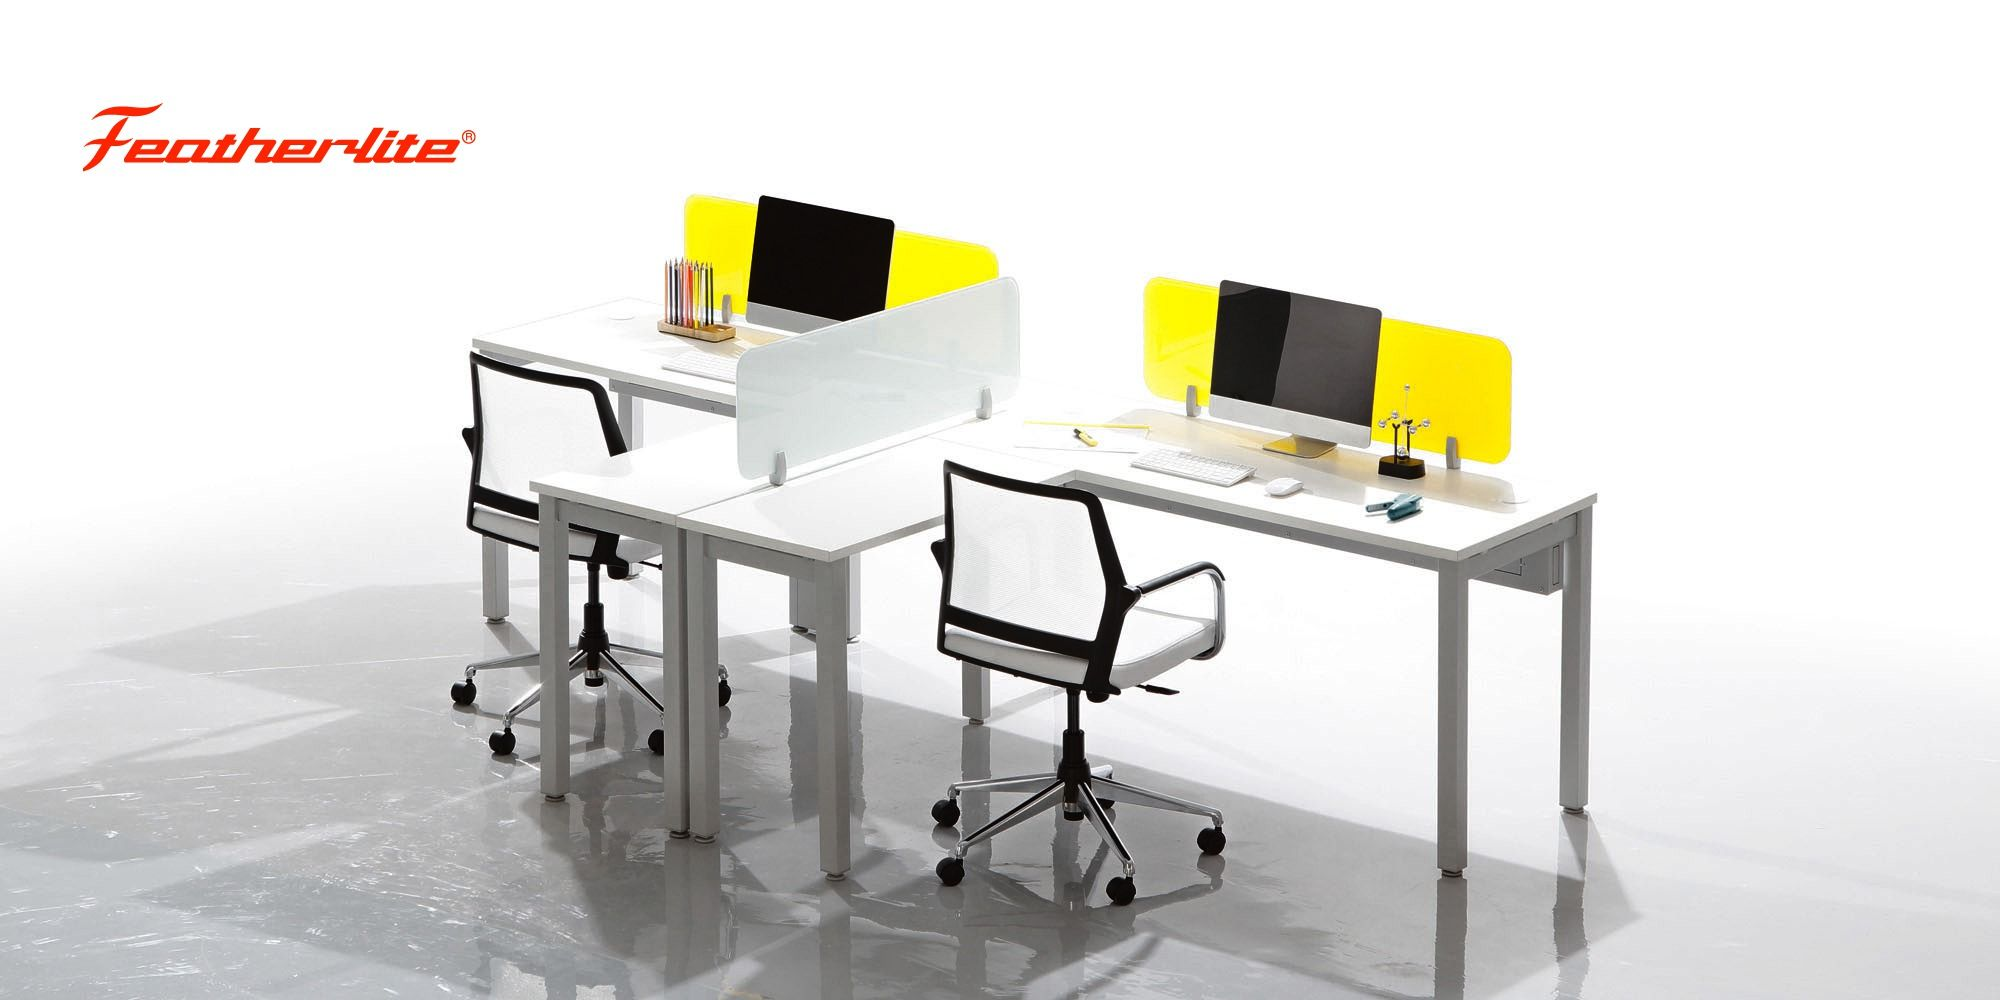 Featherlite is one of the leading furniture manufacturing